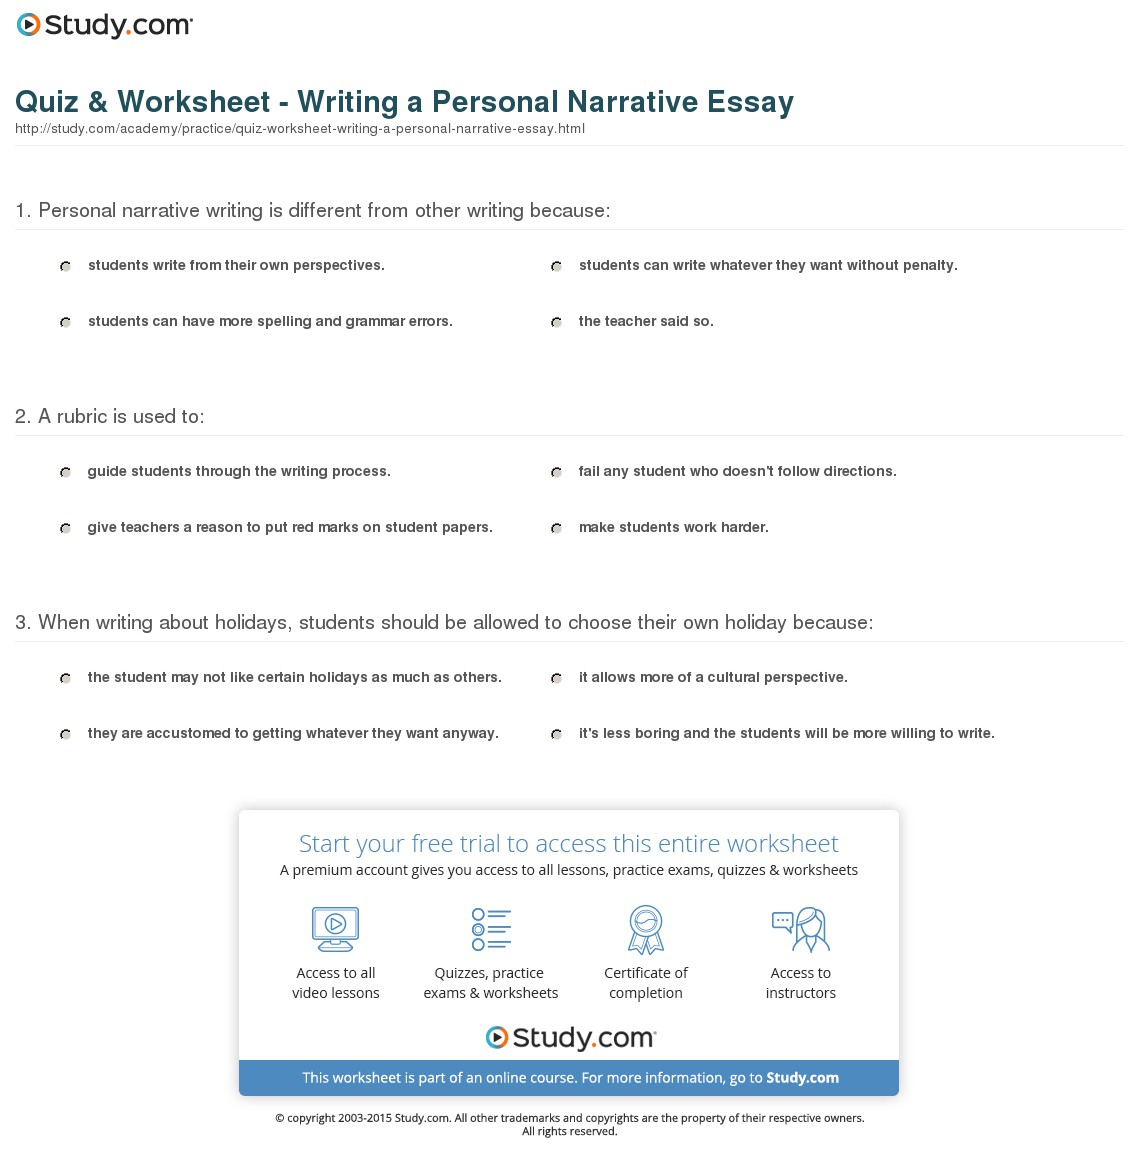 019 Quiz Worksheet Writing Personal Narrative Essay Topics For Imposing A Essays College Students 3 Full